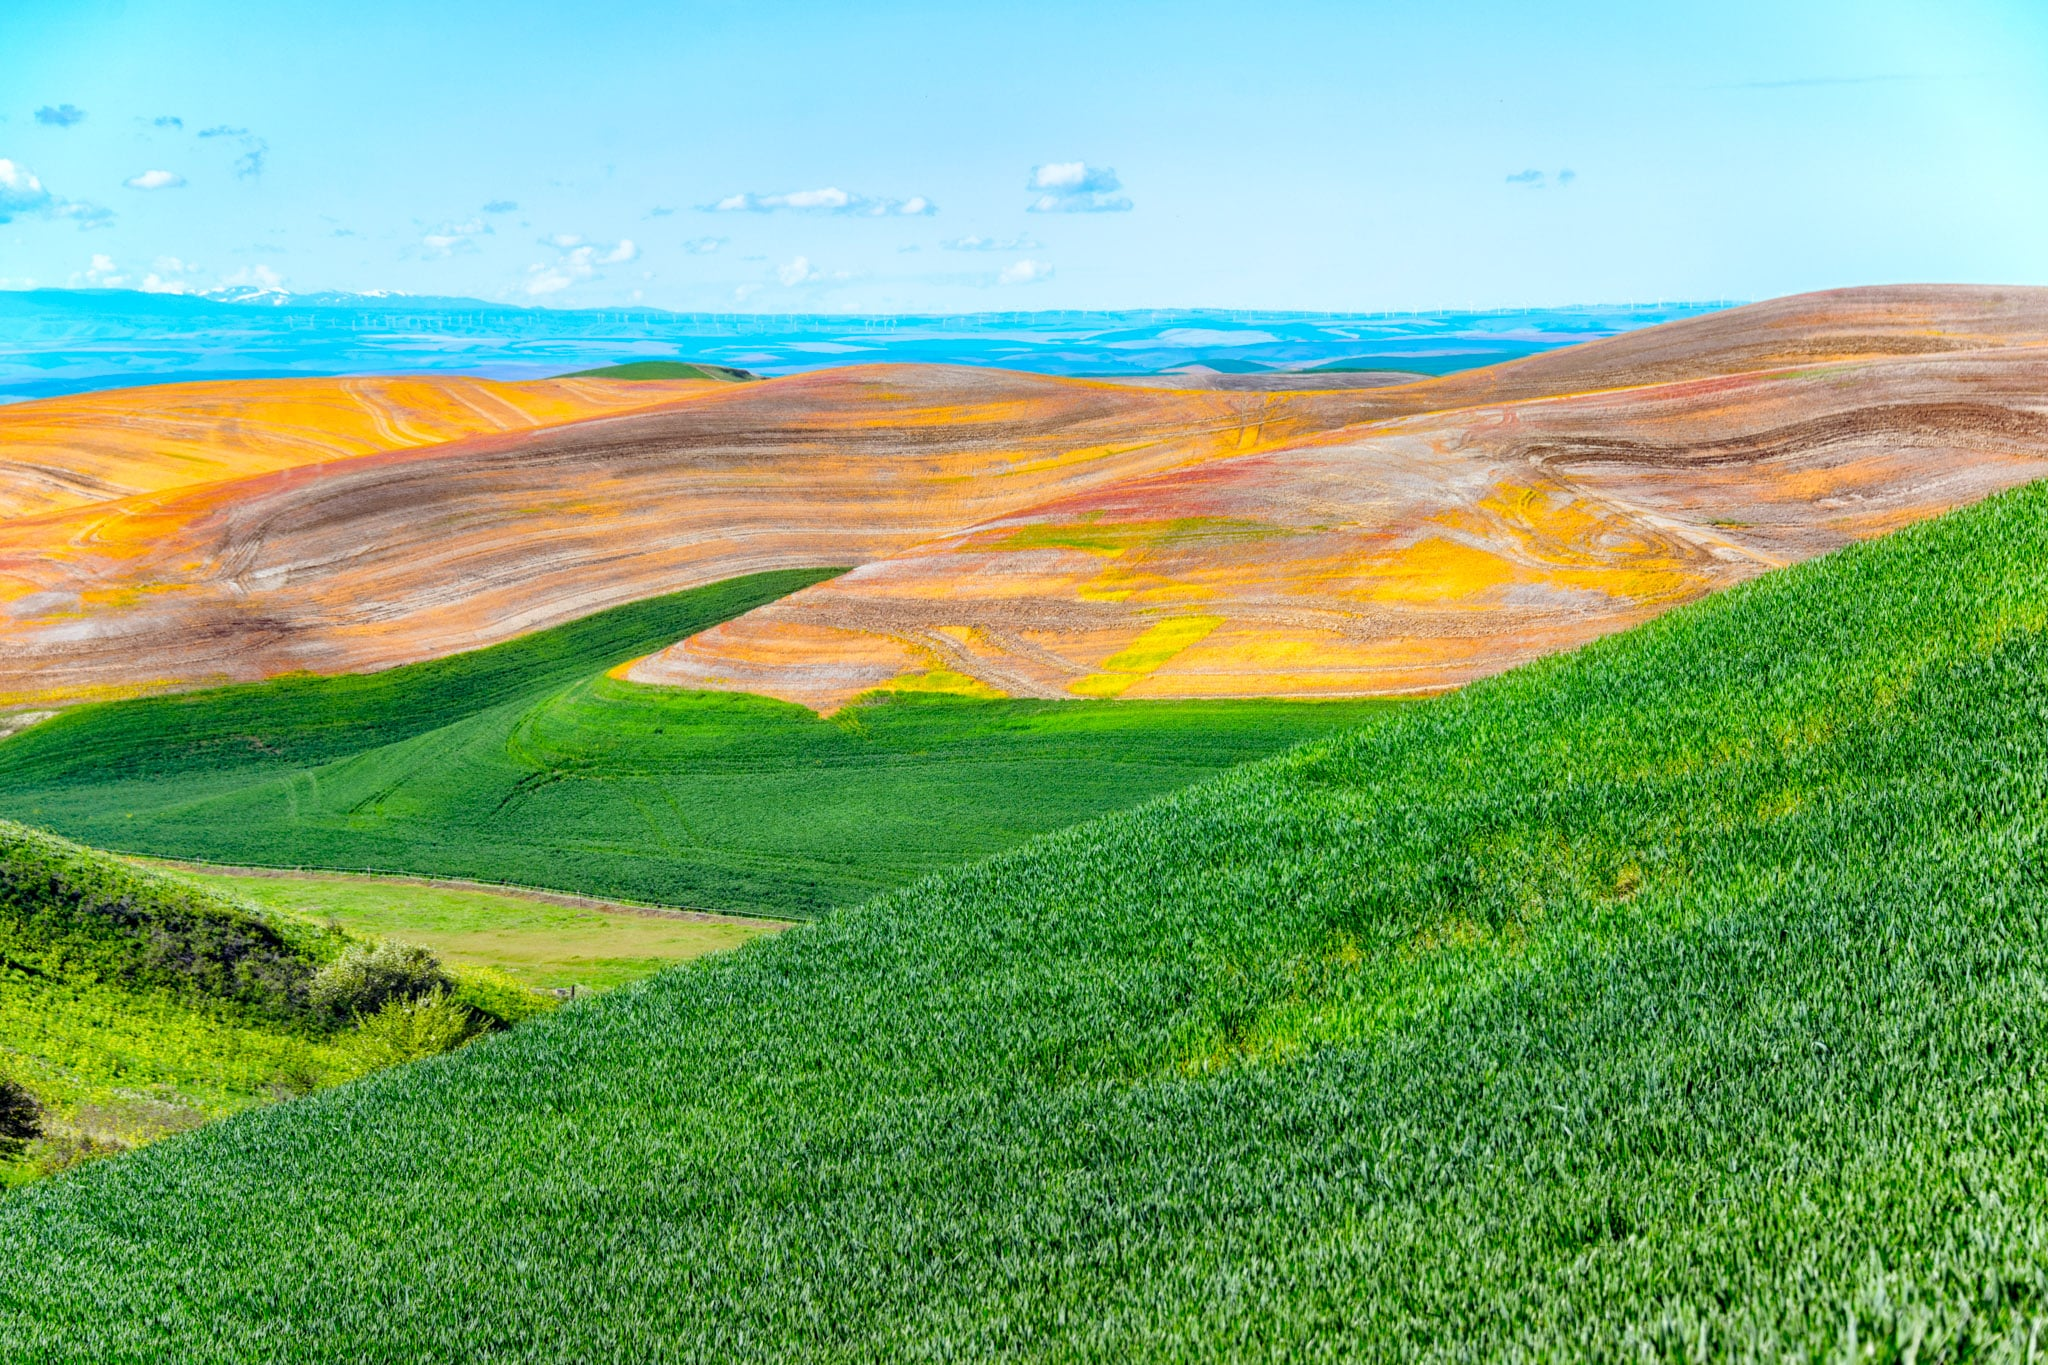 Green fields of new wheat contrast with the orange, newly harvested fields in the Palouse region of eastern Washington, near Colfax. In the hazy distance you can almost make out wind turbines.